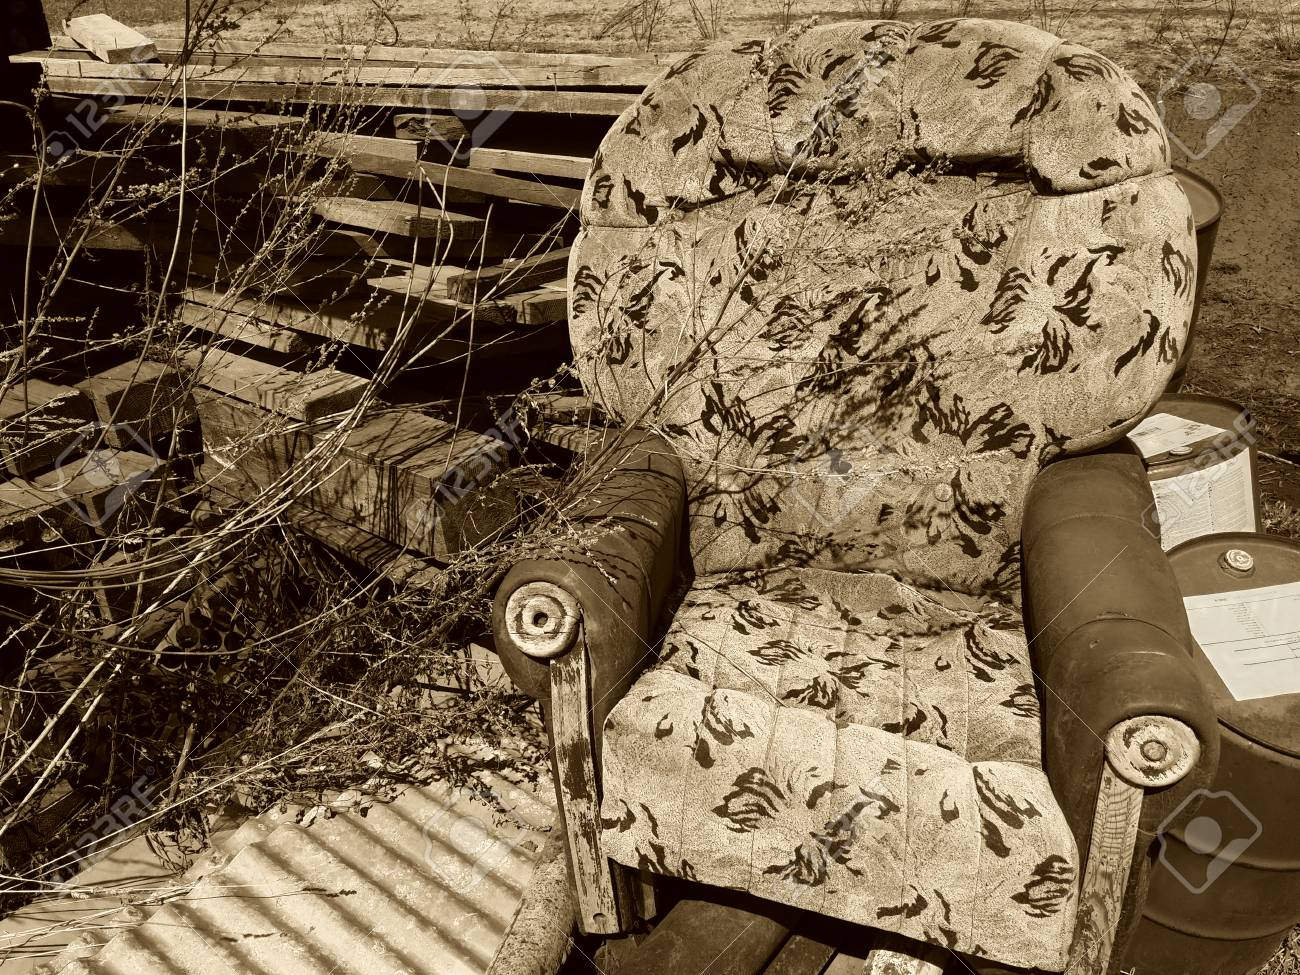 Terrific Old Broken Armchair At The Dump With Boards Andrewgaddart Wooden Chair Designs For Living Room Andrewgaddartcom